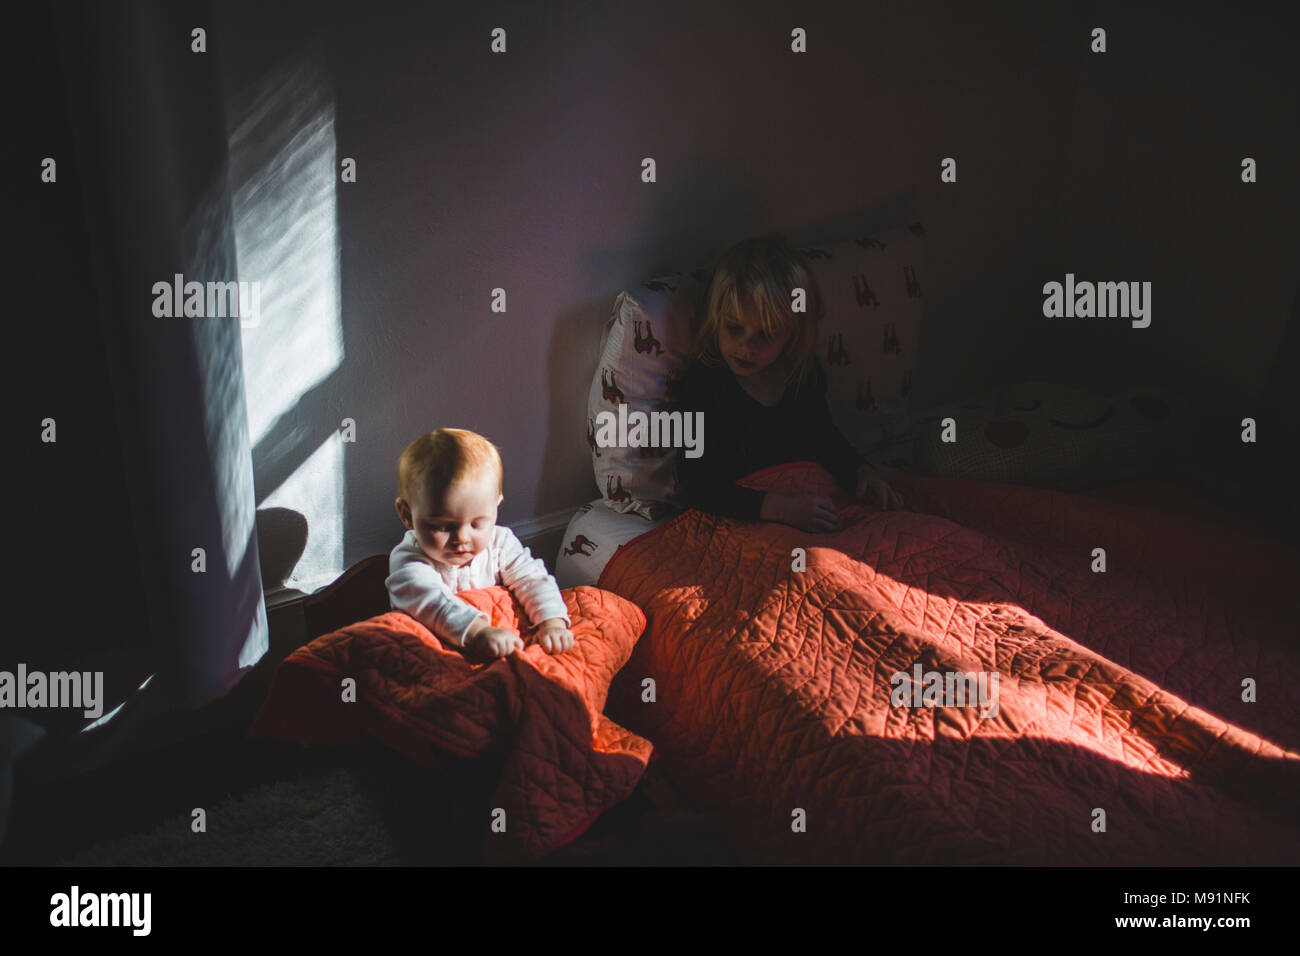 baby in babydoll cradle dramatic light trendy kids room - Stock Image